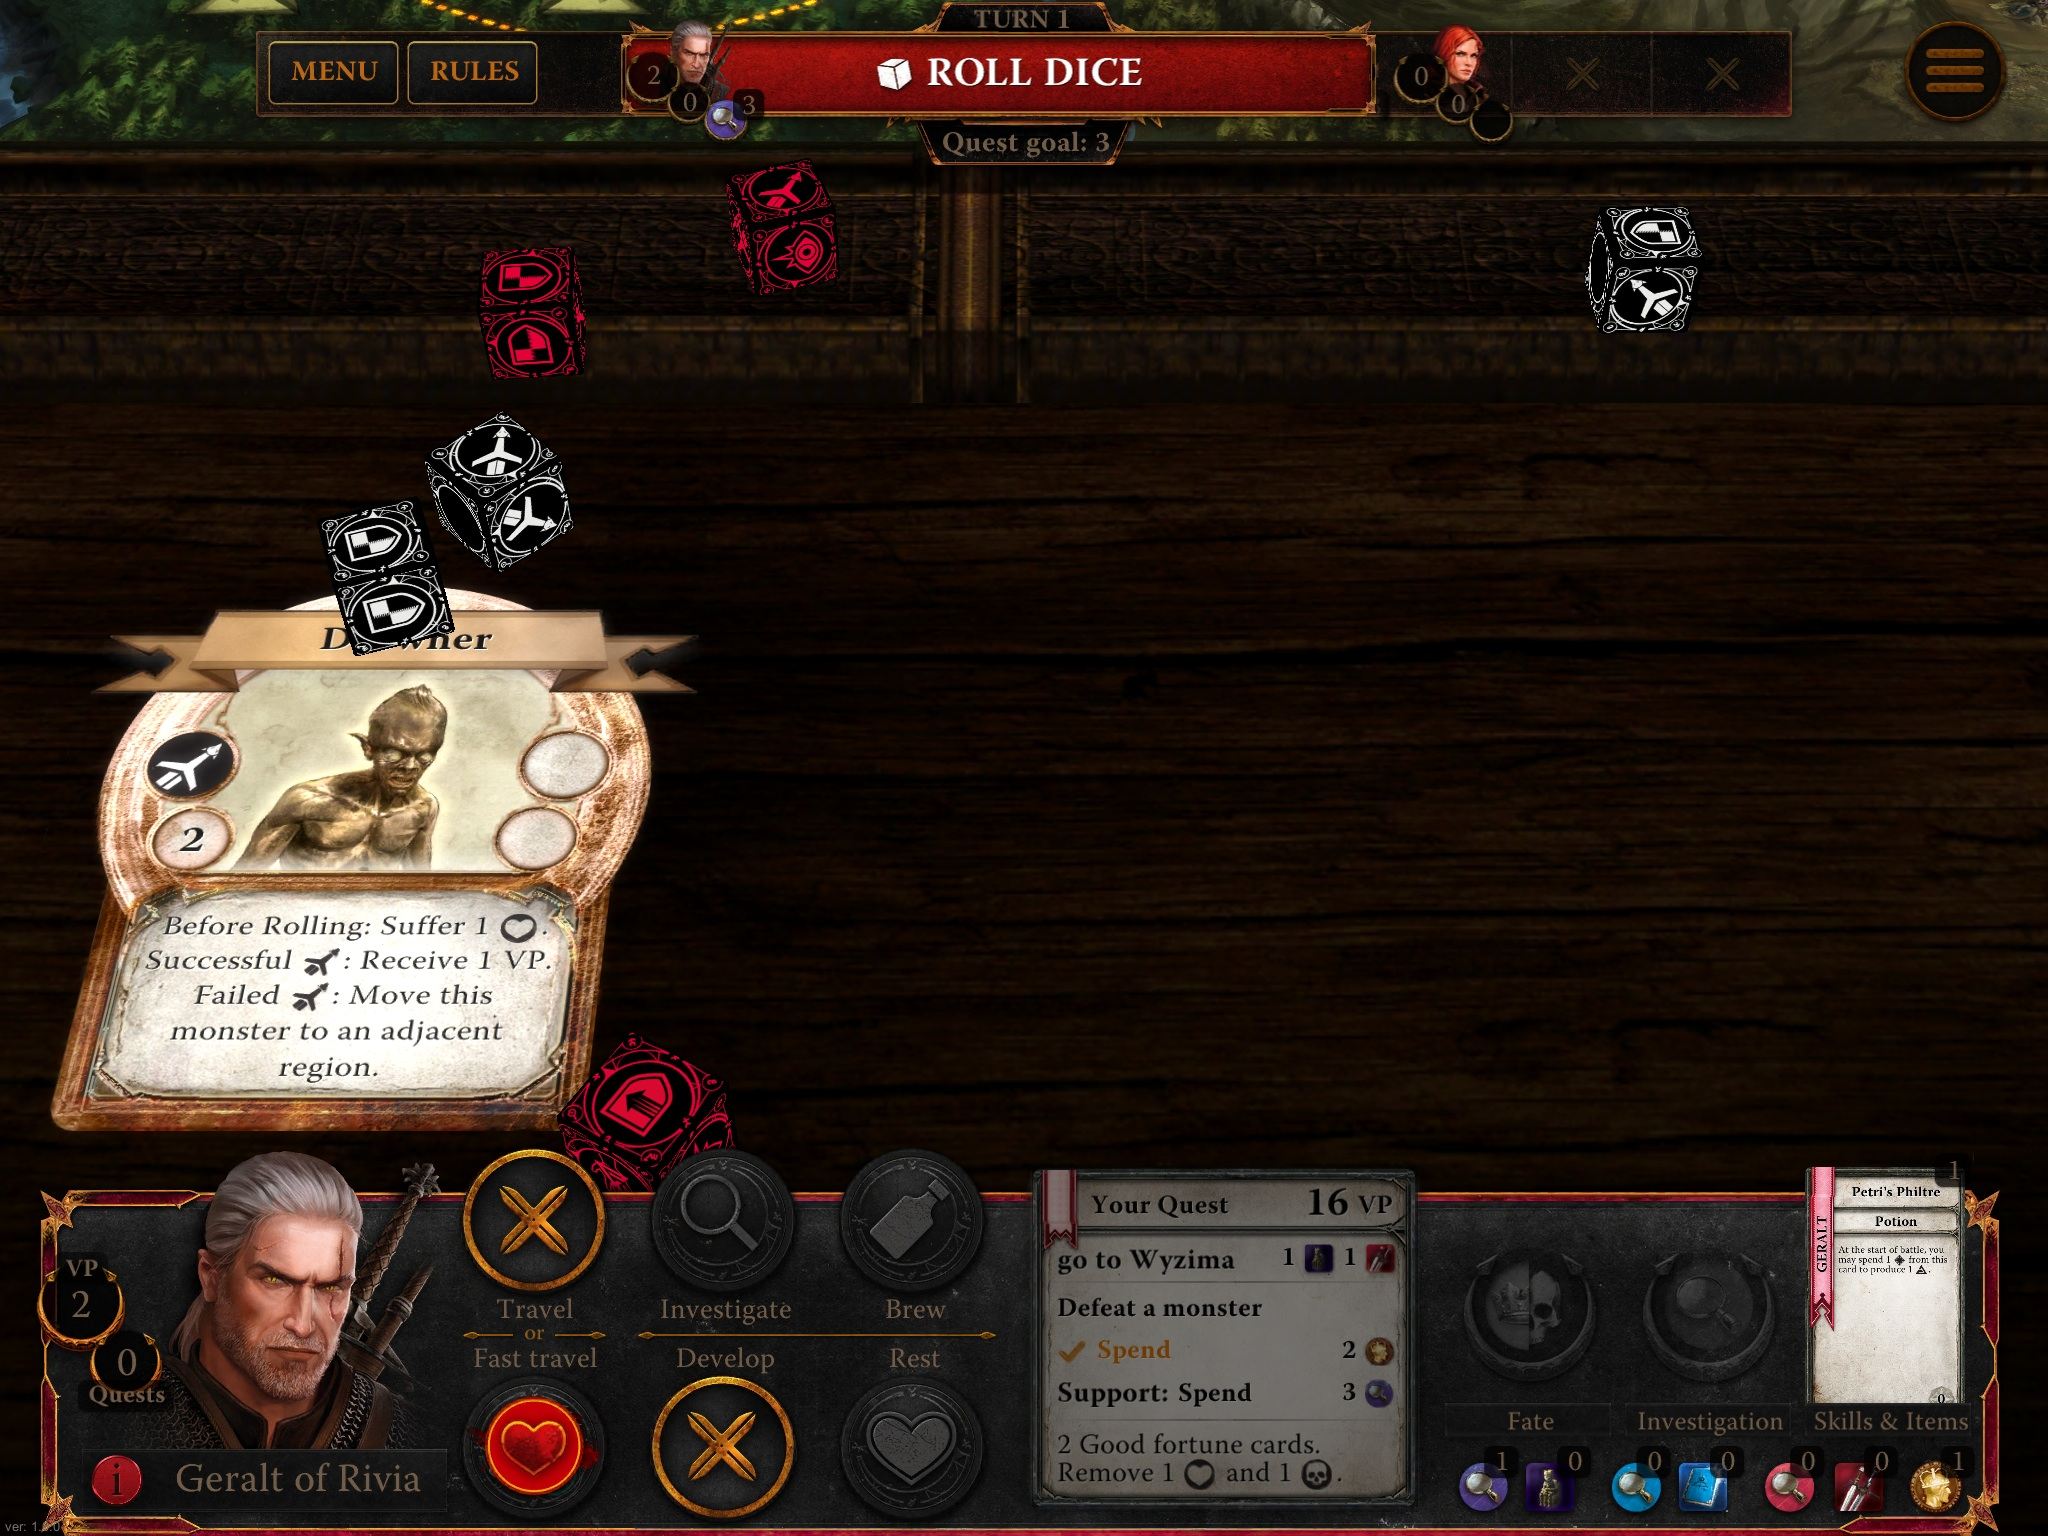 The Witcher Adventure Game iOS review